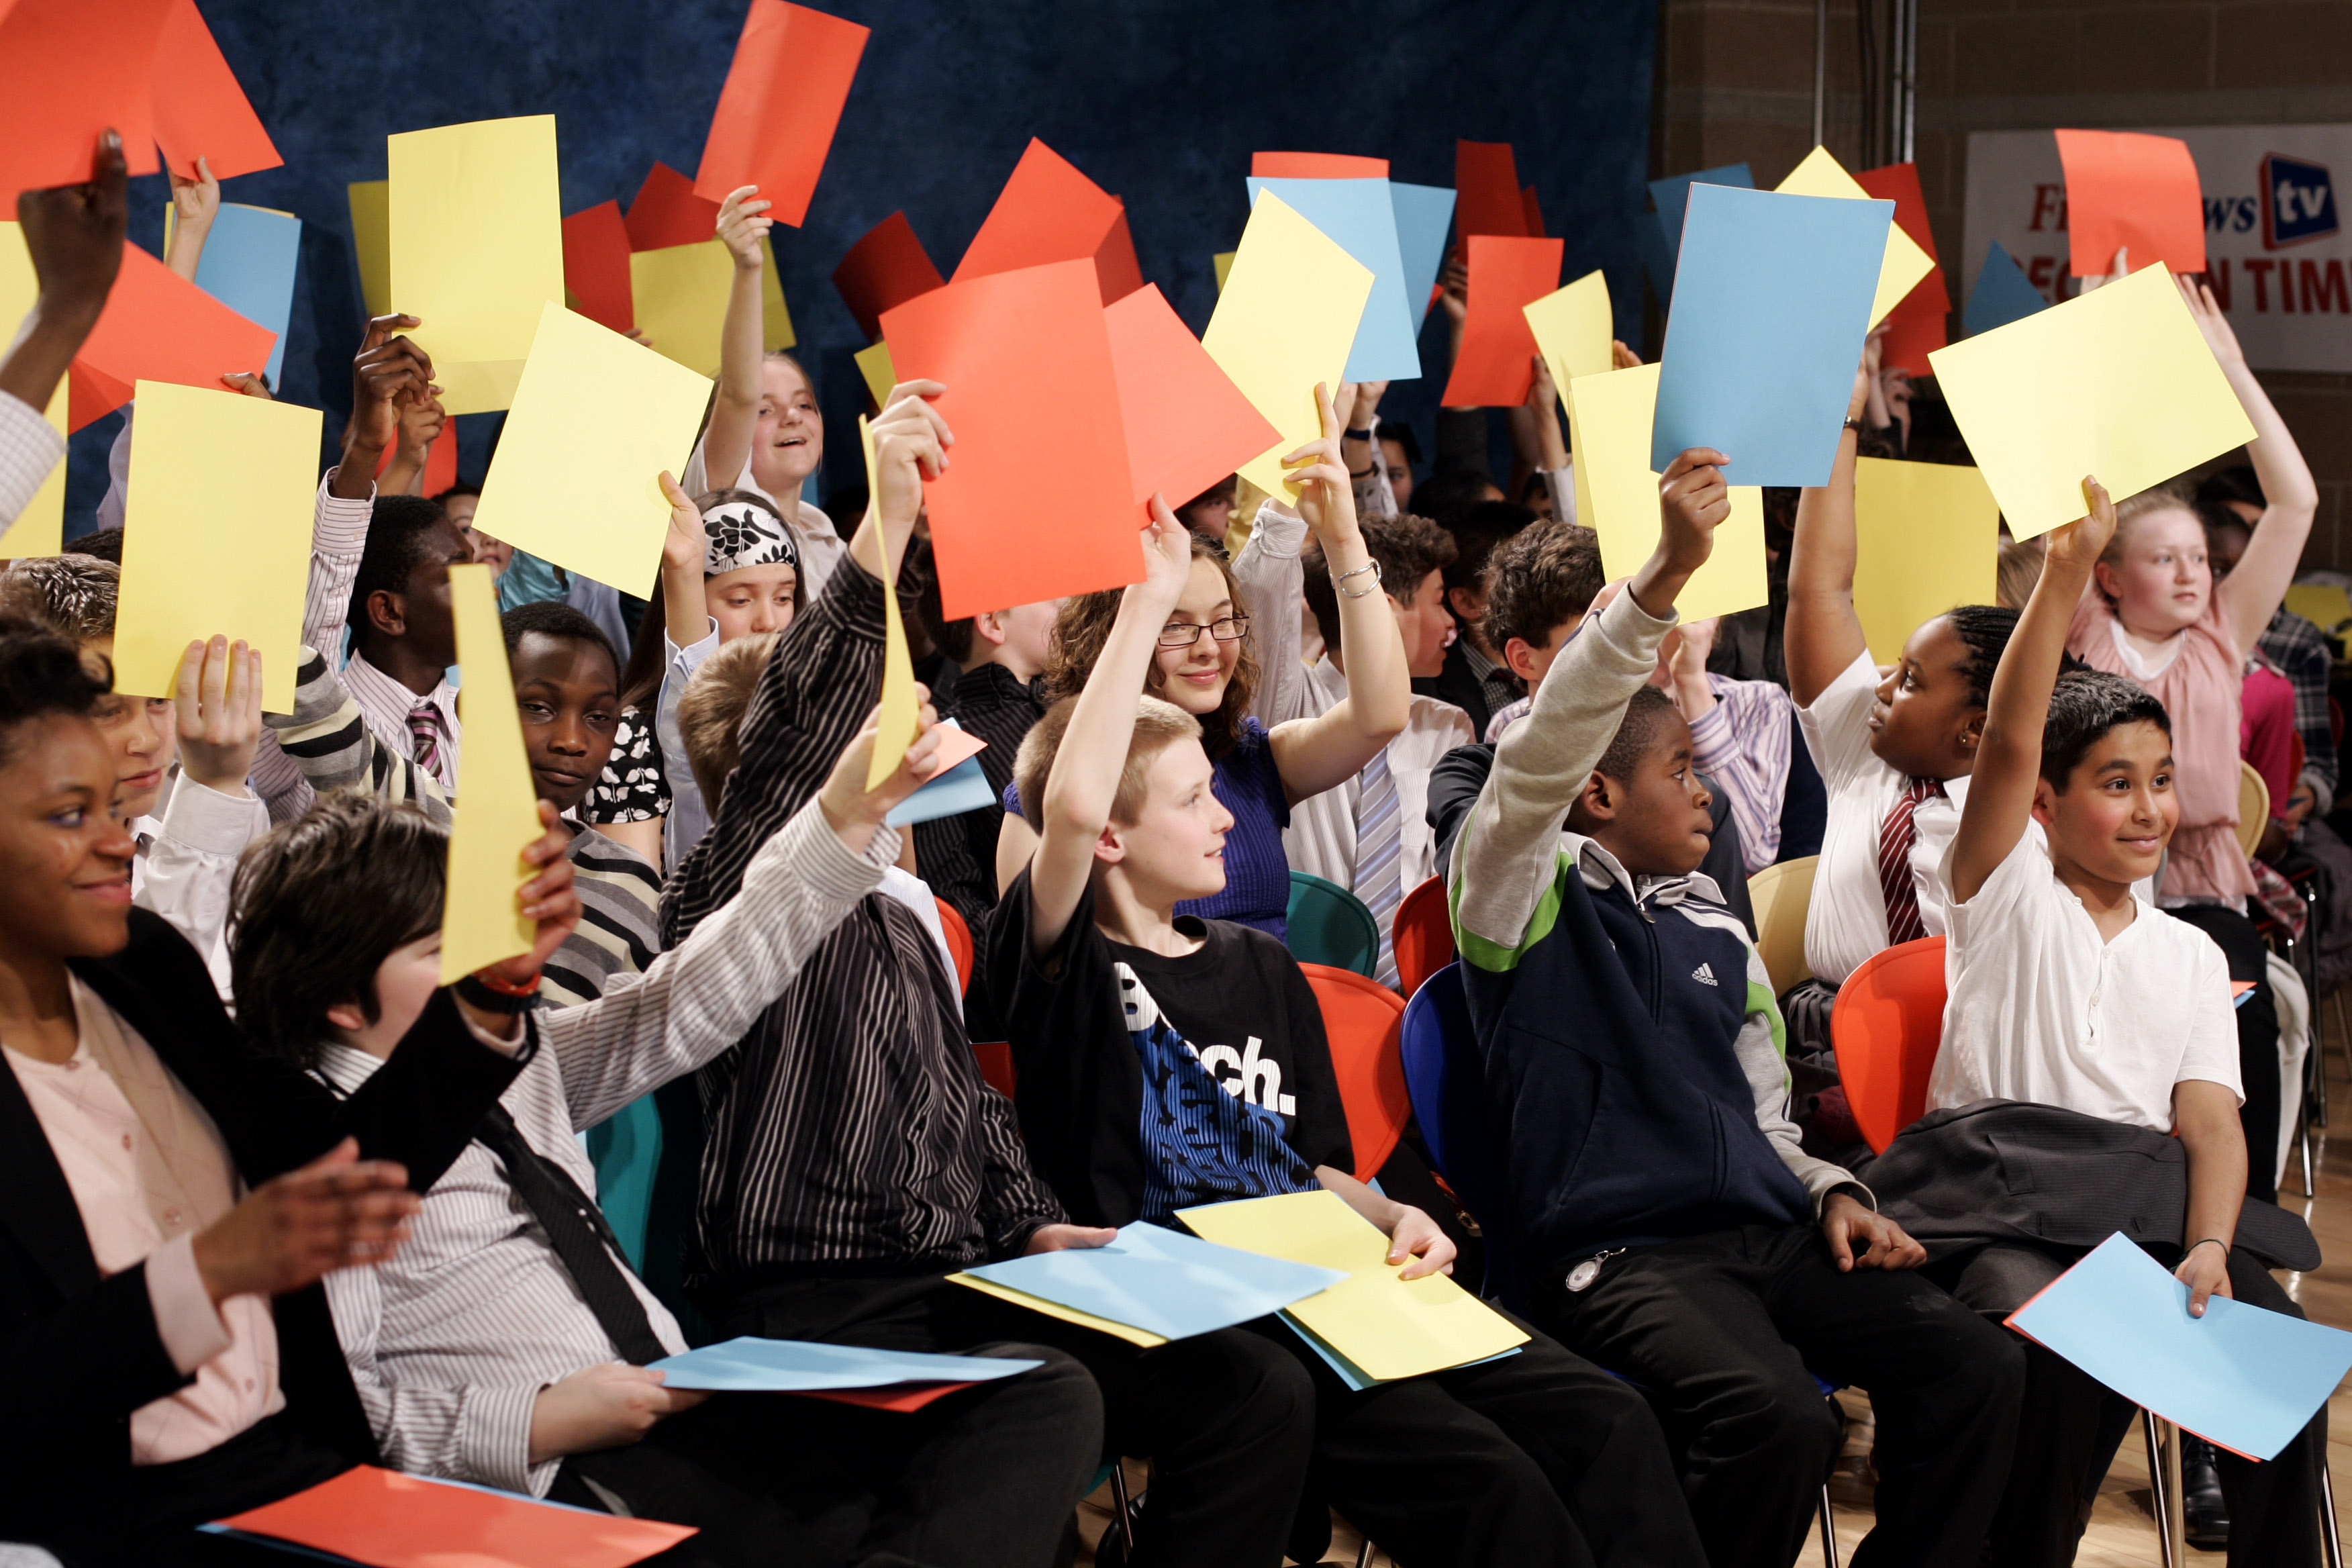 Children voting in a debate in London in 2010